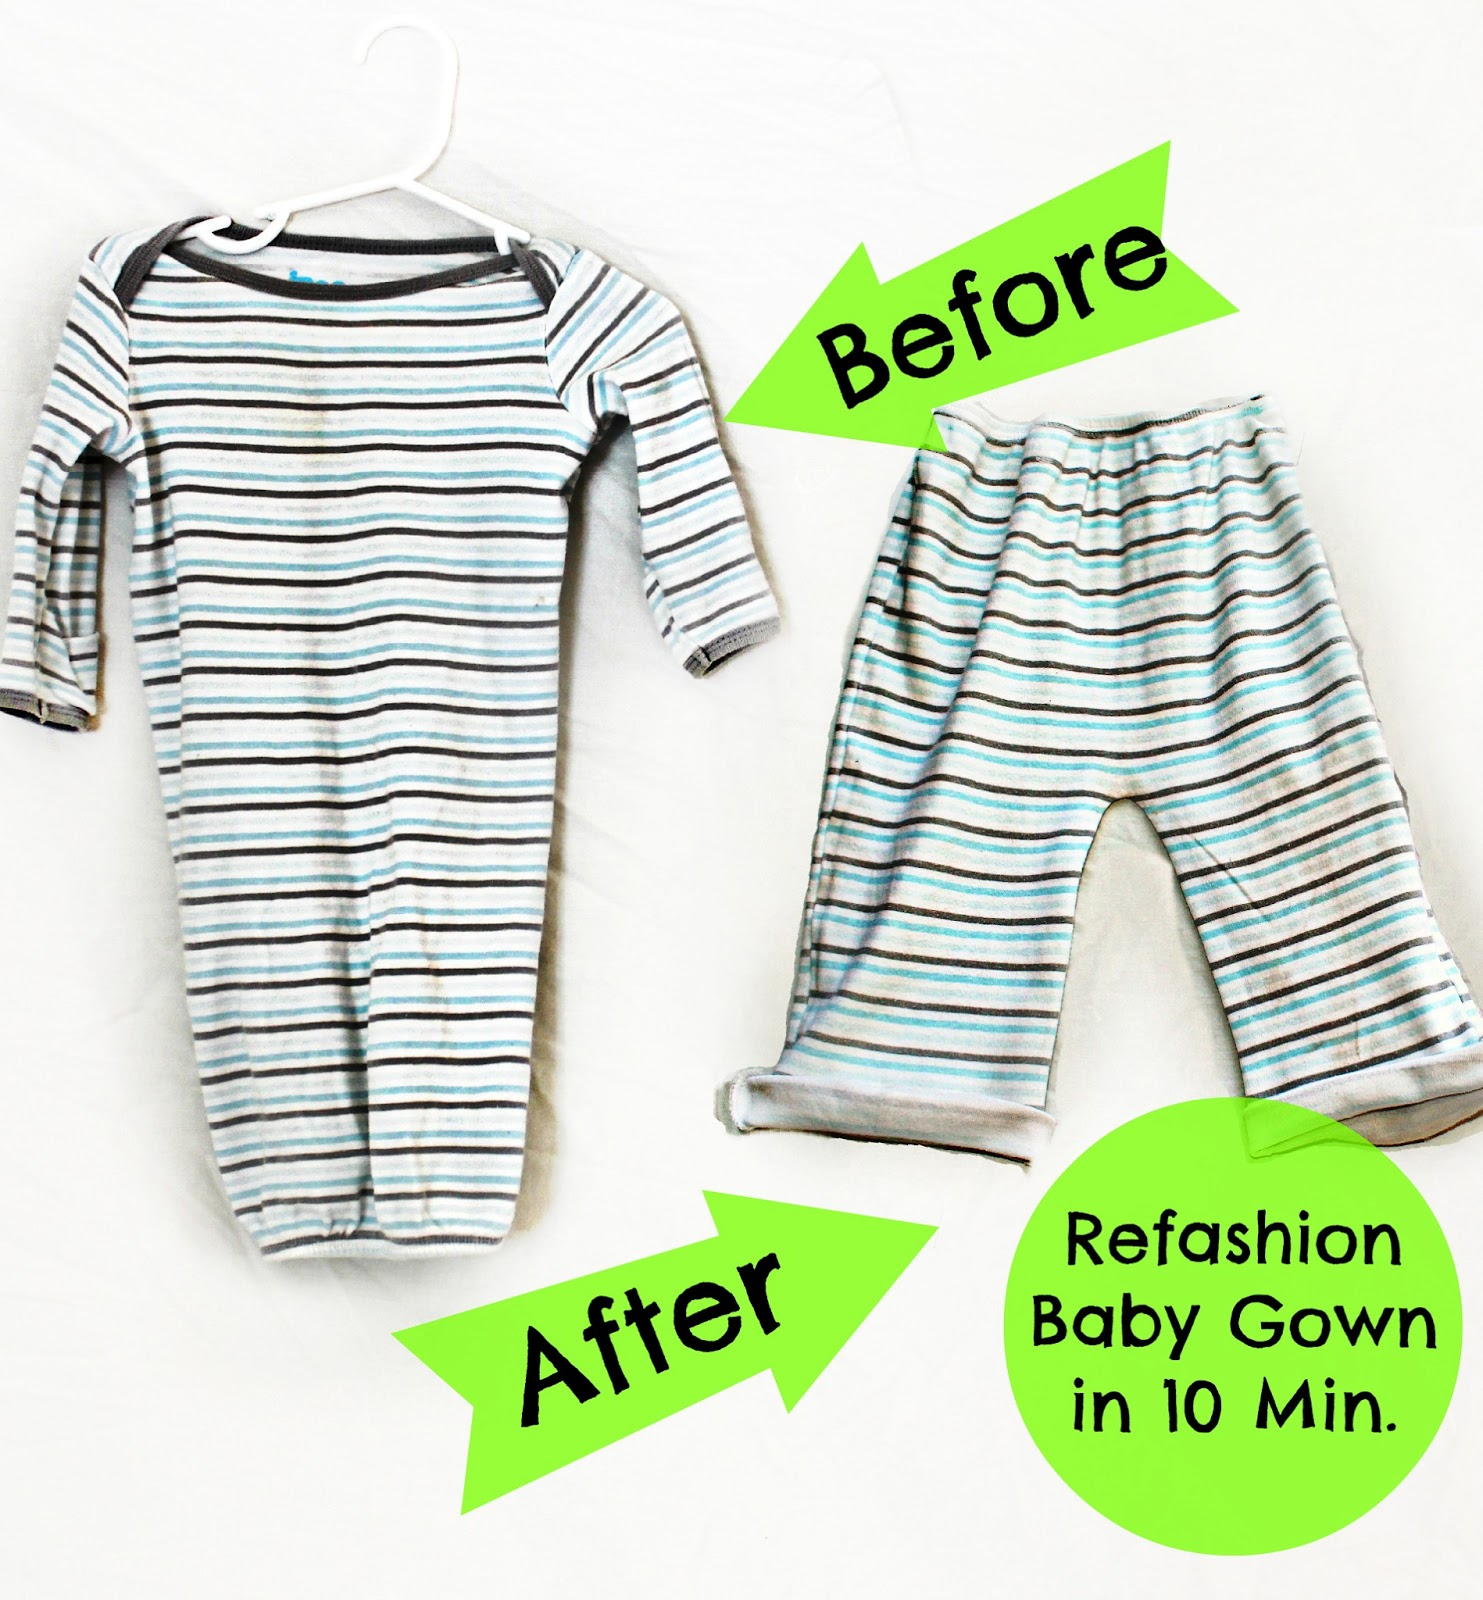 My Life on the Divide: How to refashion a Baby Gown into Toddler Pants